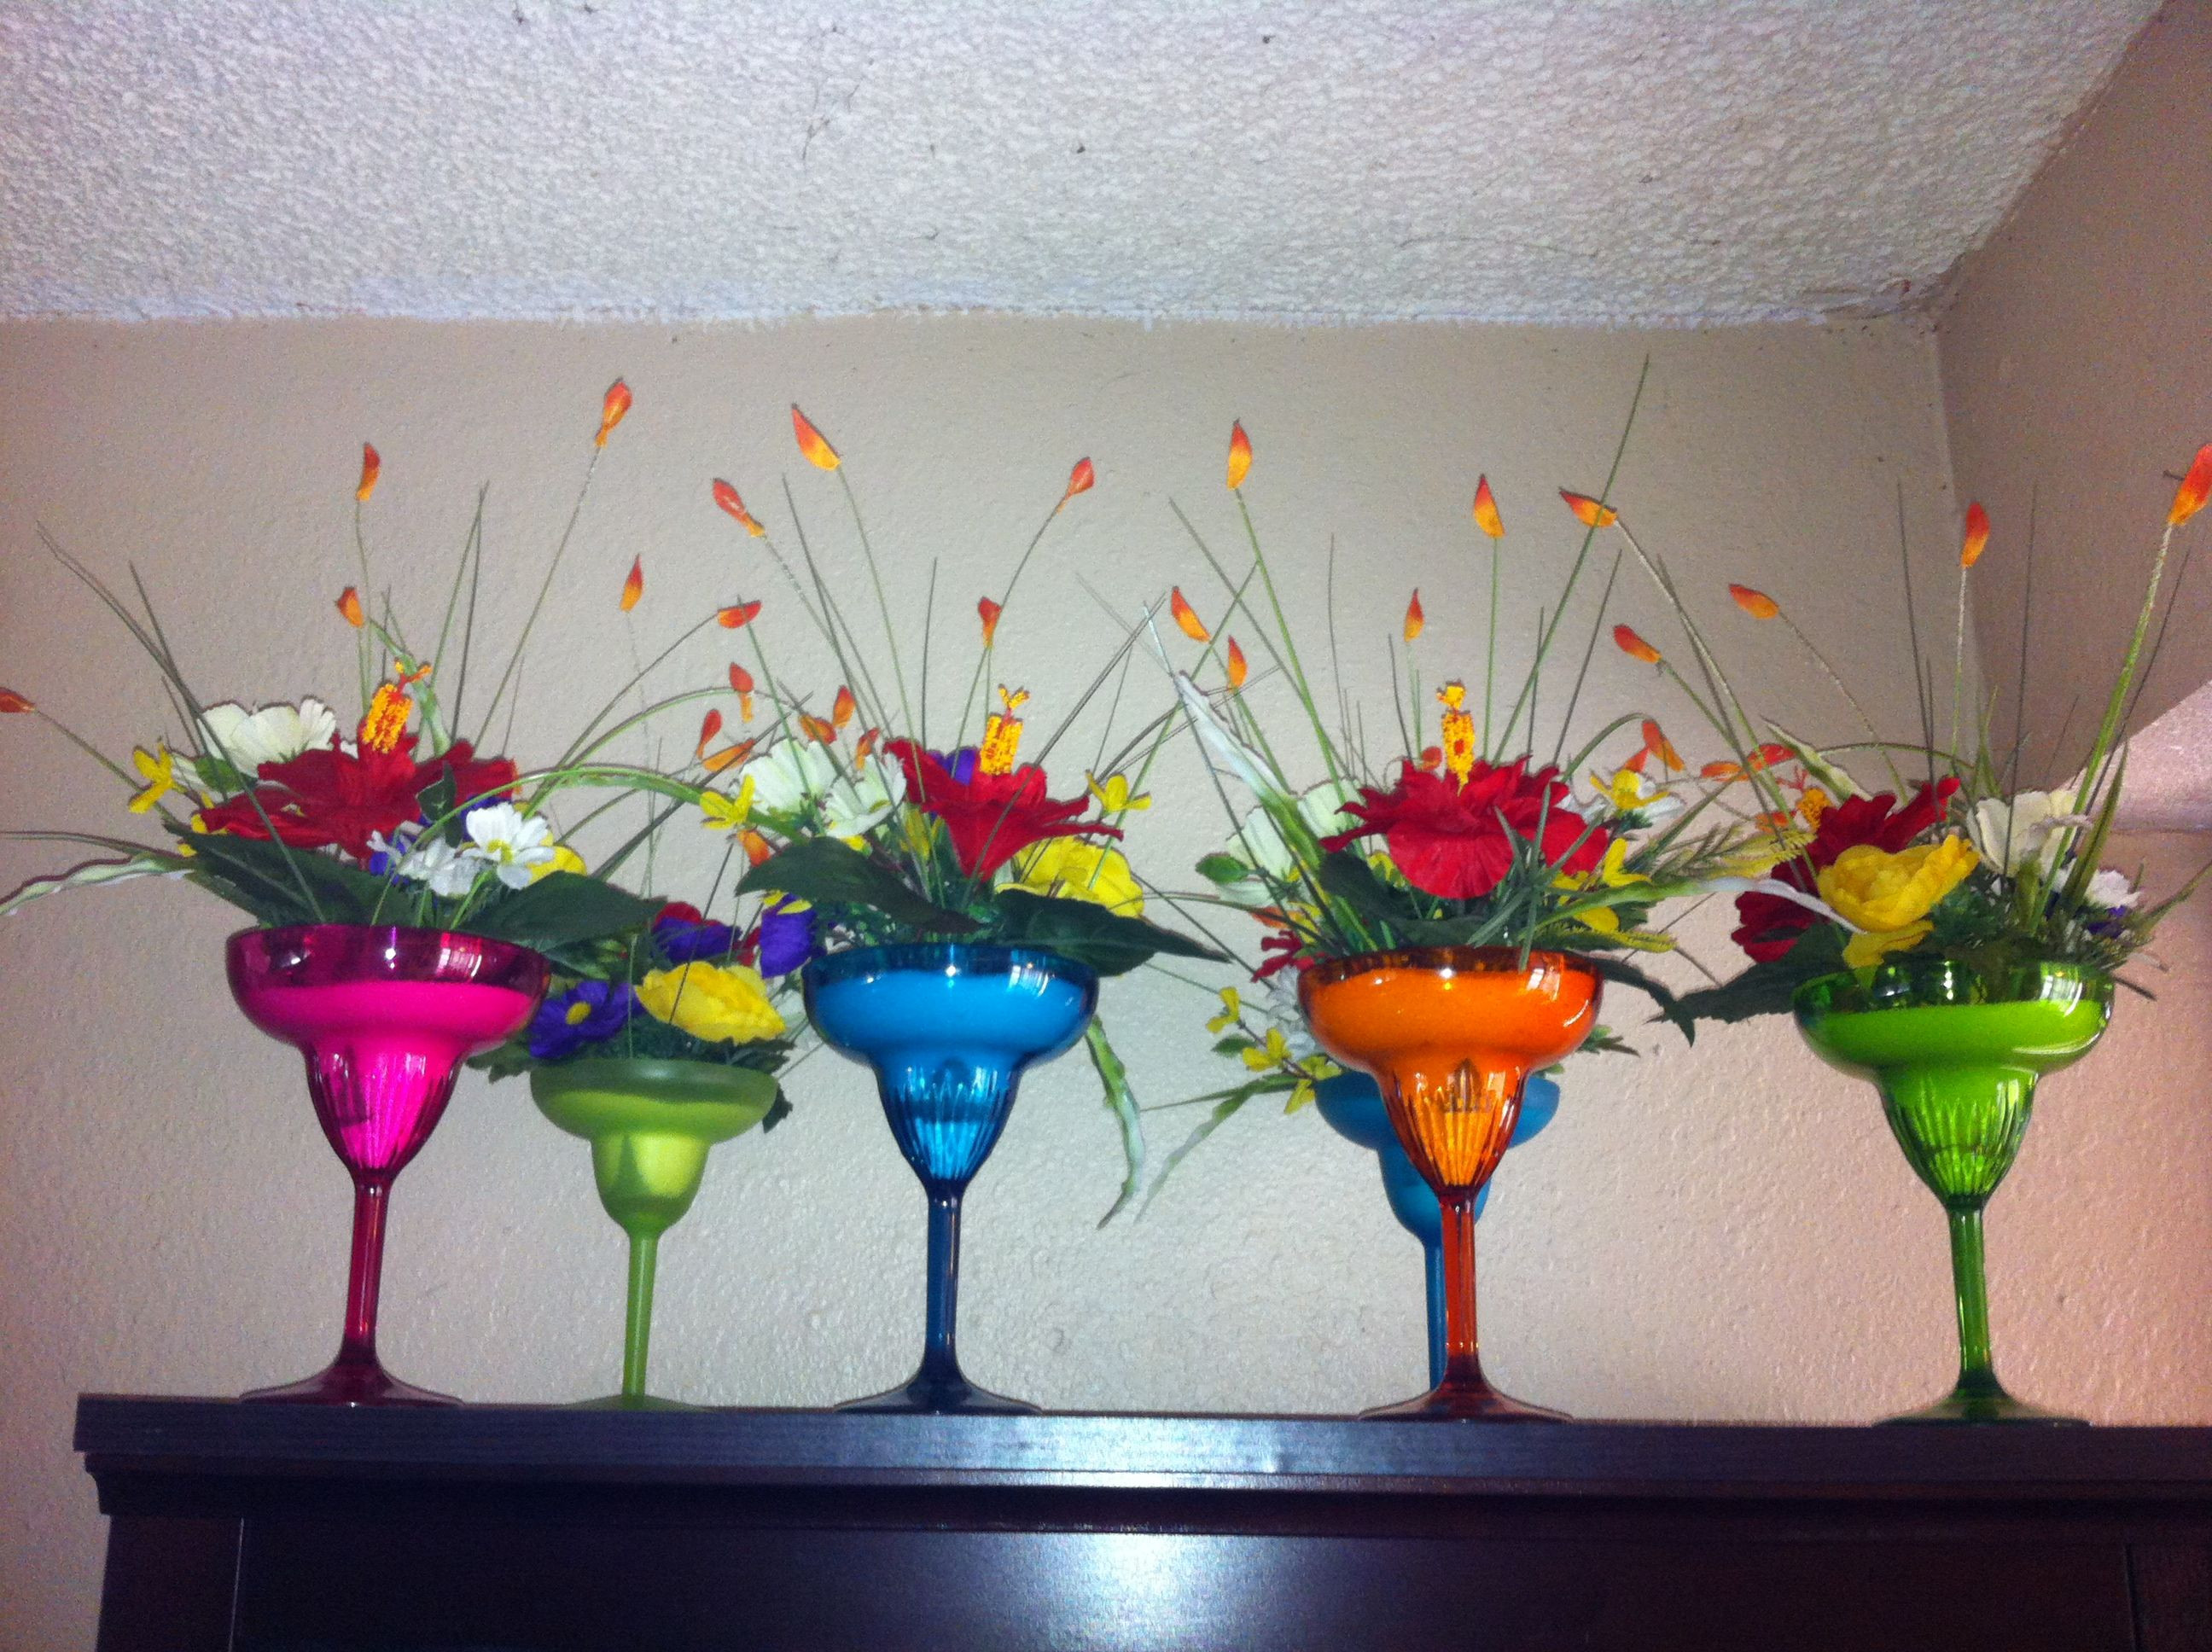 plastic centerpiece vases of fiesta party centerpieces plastic margarita glasses filled with within fiesta party centerpieces plastic margarita glasses filled with white sand and bright colored flowers